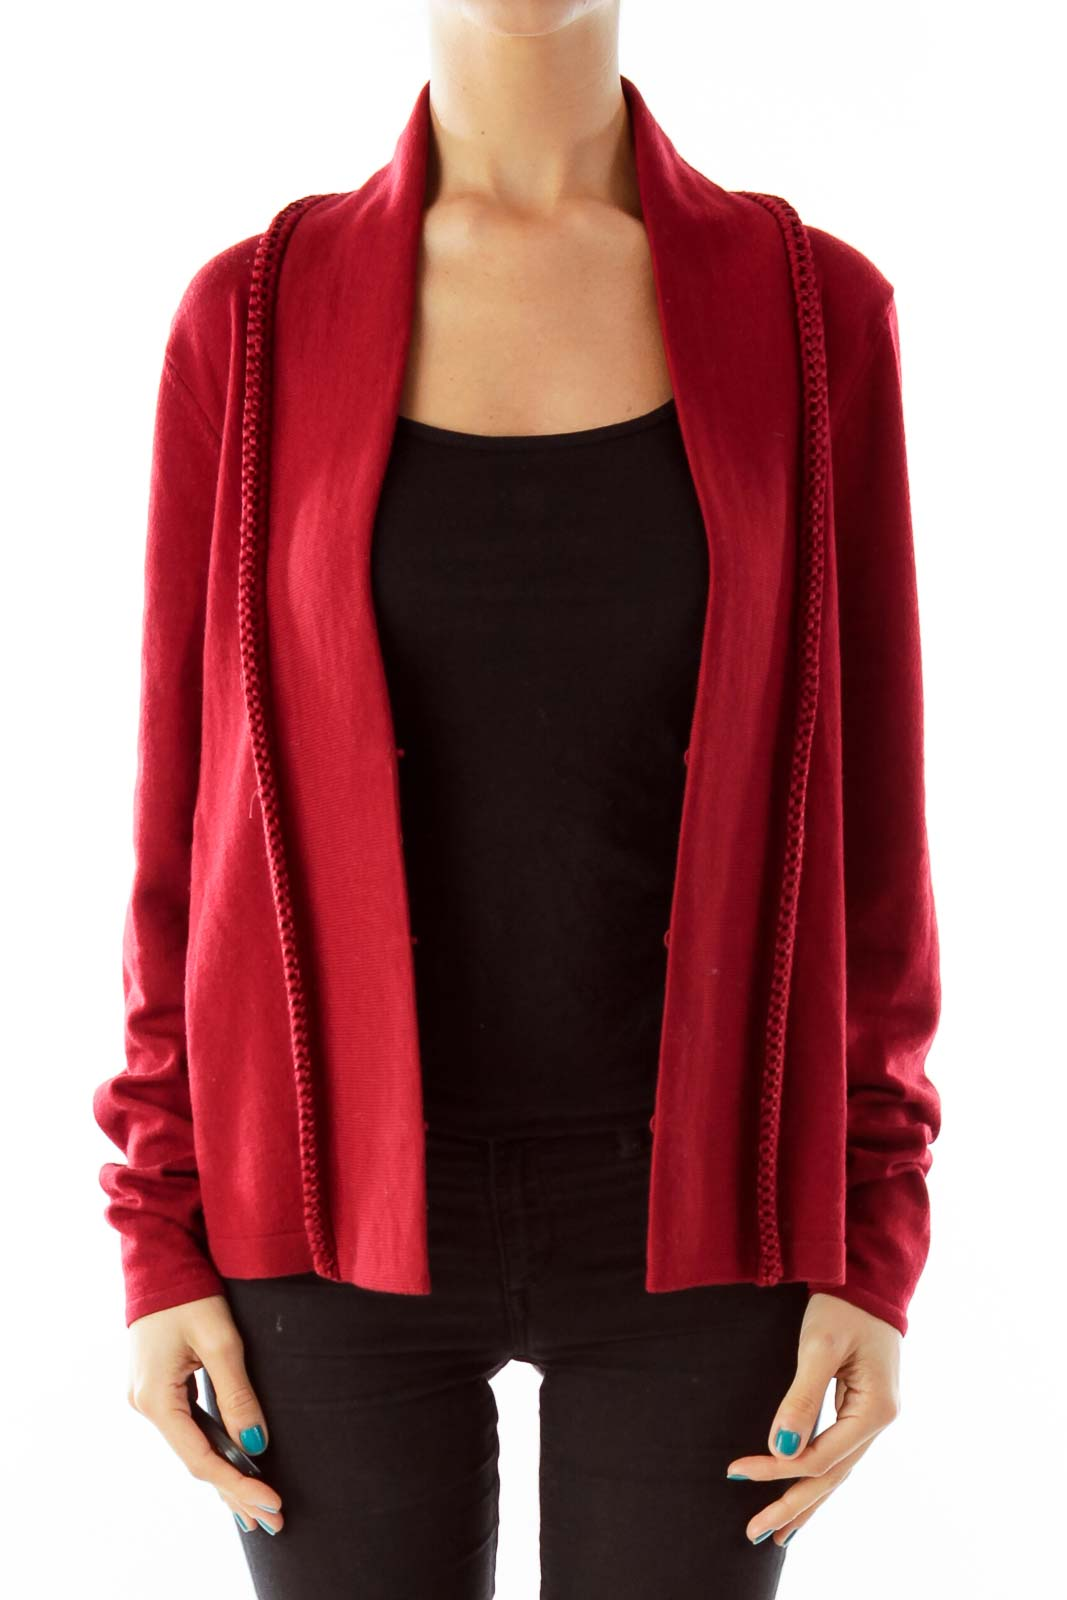 Red Merino Wool Cardigan [M] - SilkRoll